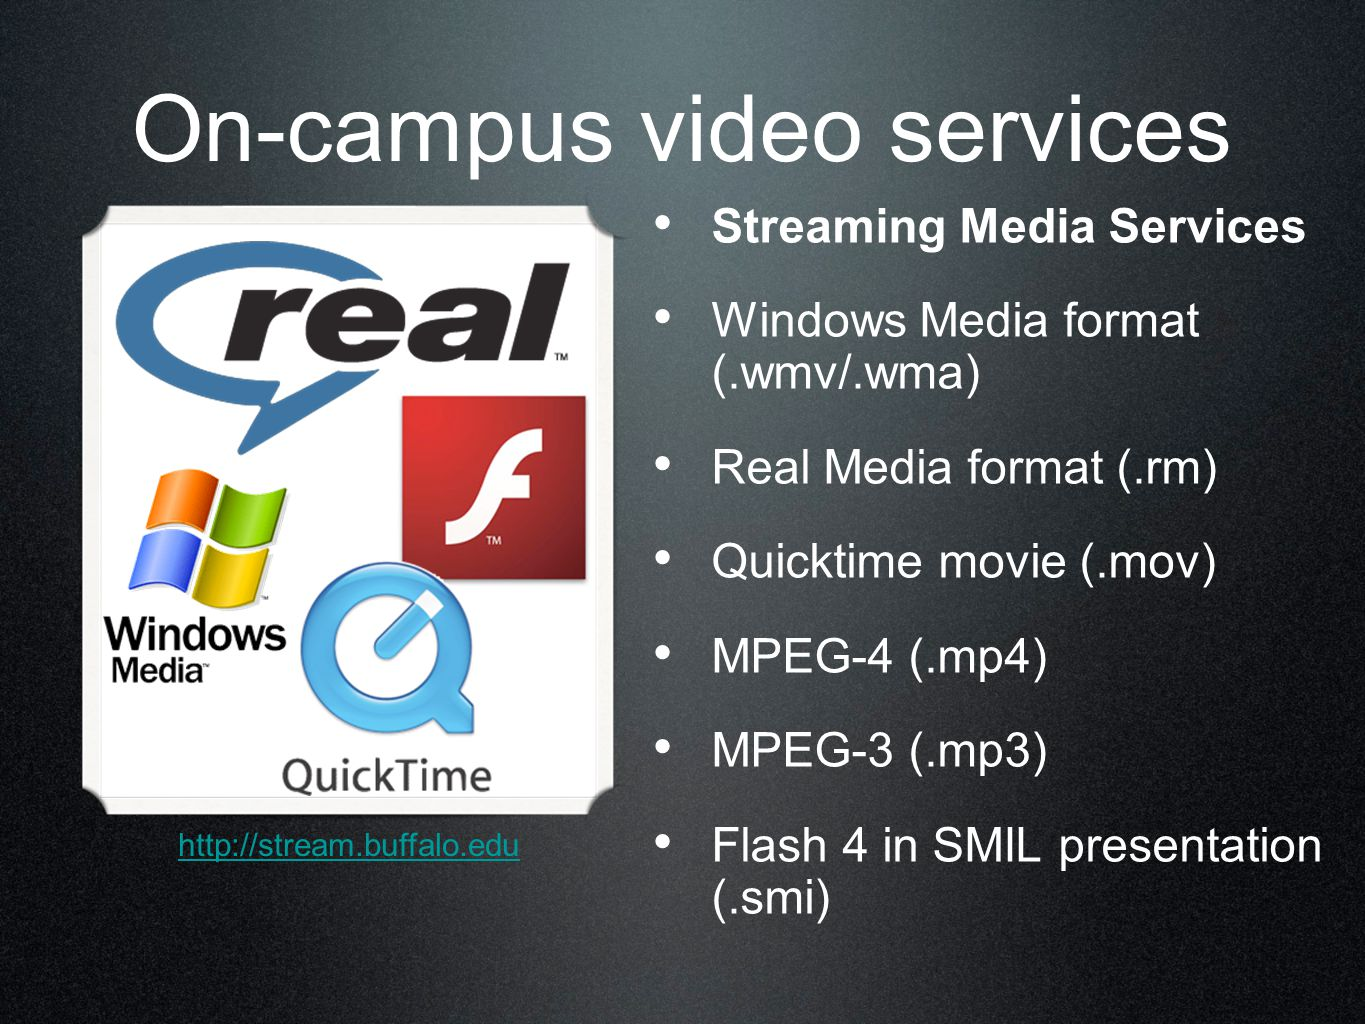 On-campus video services Streaming Media Services Windows Media format (.wmv/.wma) Real Media format (.rm) Quicktime movie (.mov) MPEG-4 (.mp4) MPEG-3 (.mp3) Flash 4 in SMIL presentation (.smi) http://stream.buffalo.edu